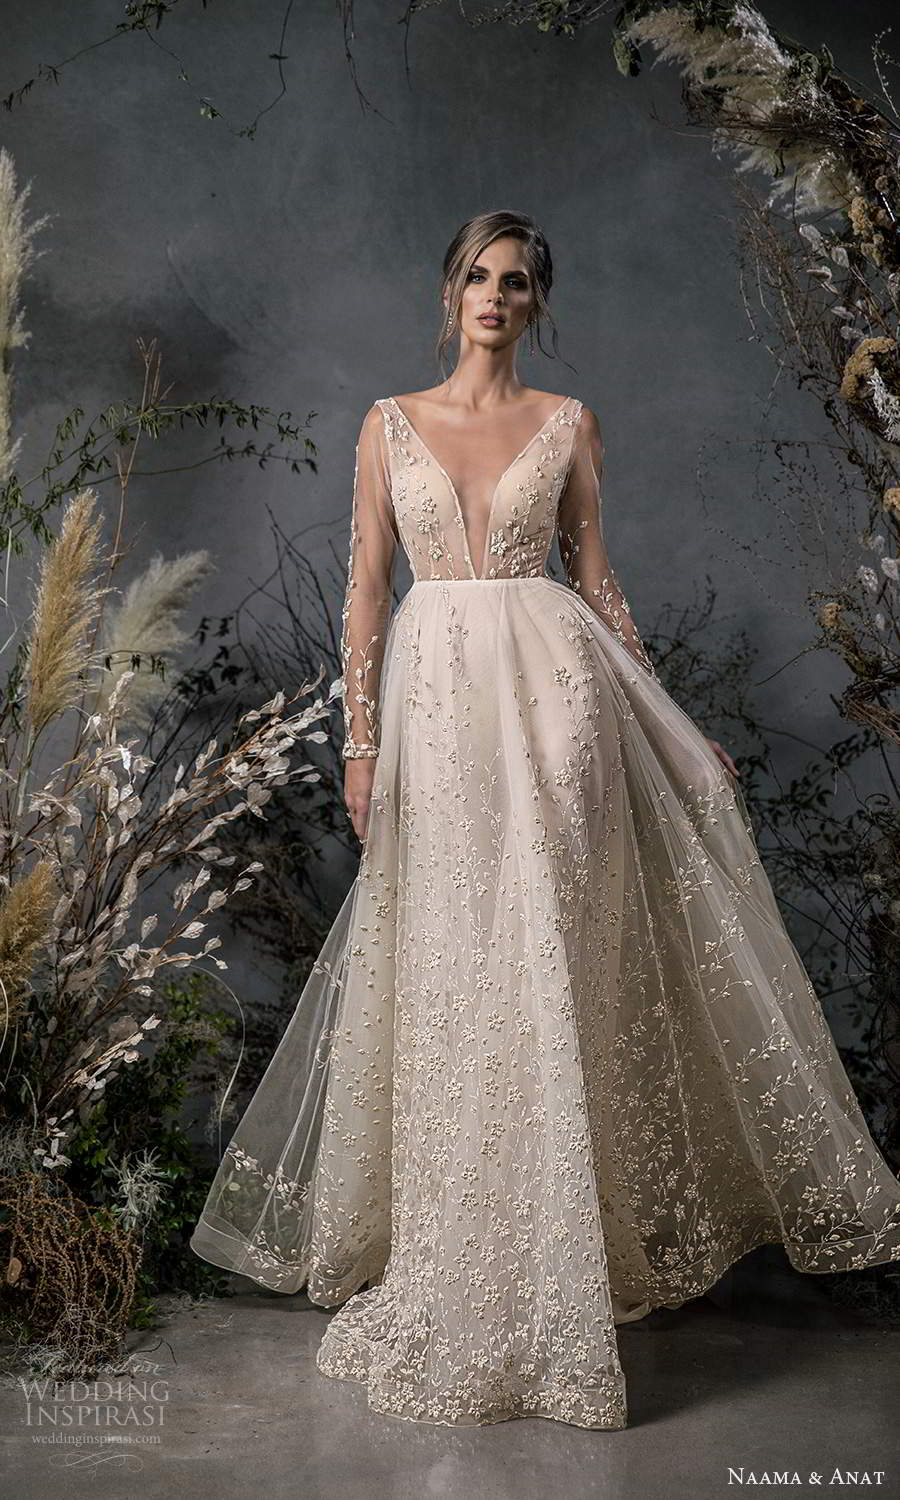 naama anat fall 2020 bridal illusion long sleeves plunging v neckline fully embellished a line ball gown wedding dress chapel train (6) mv